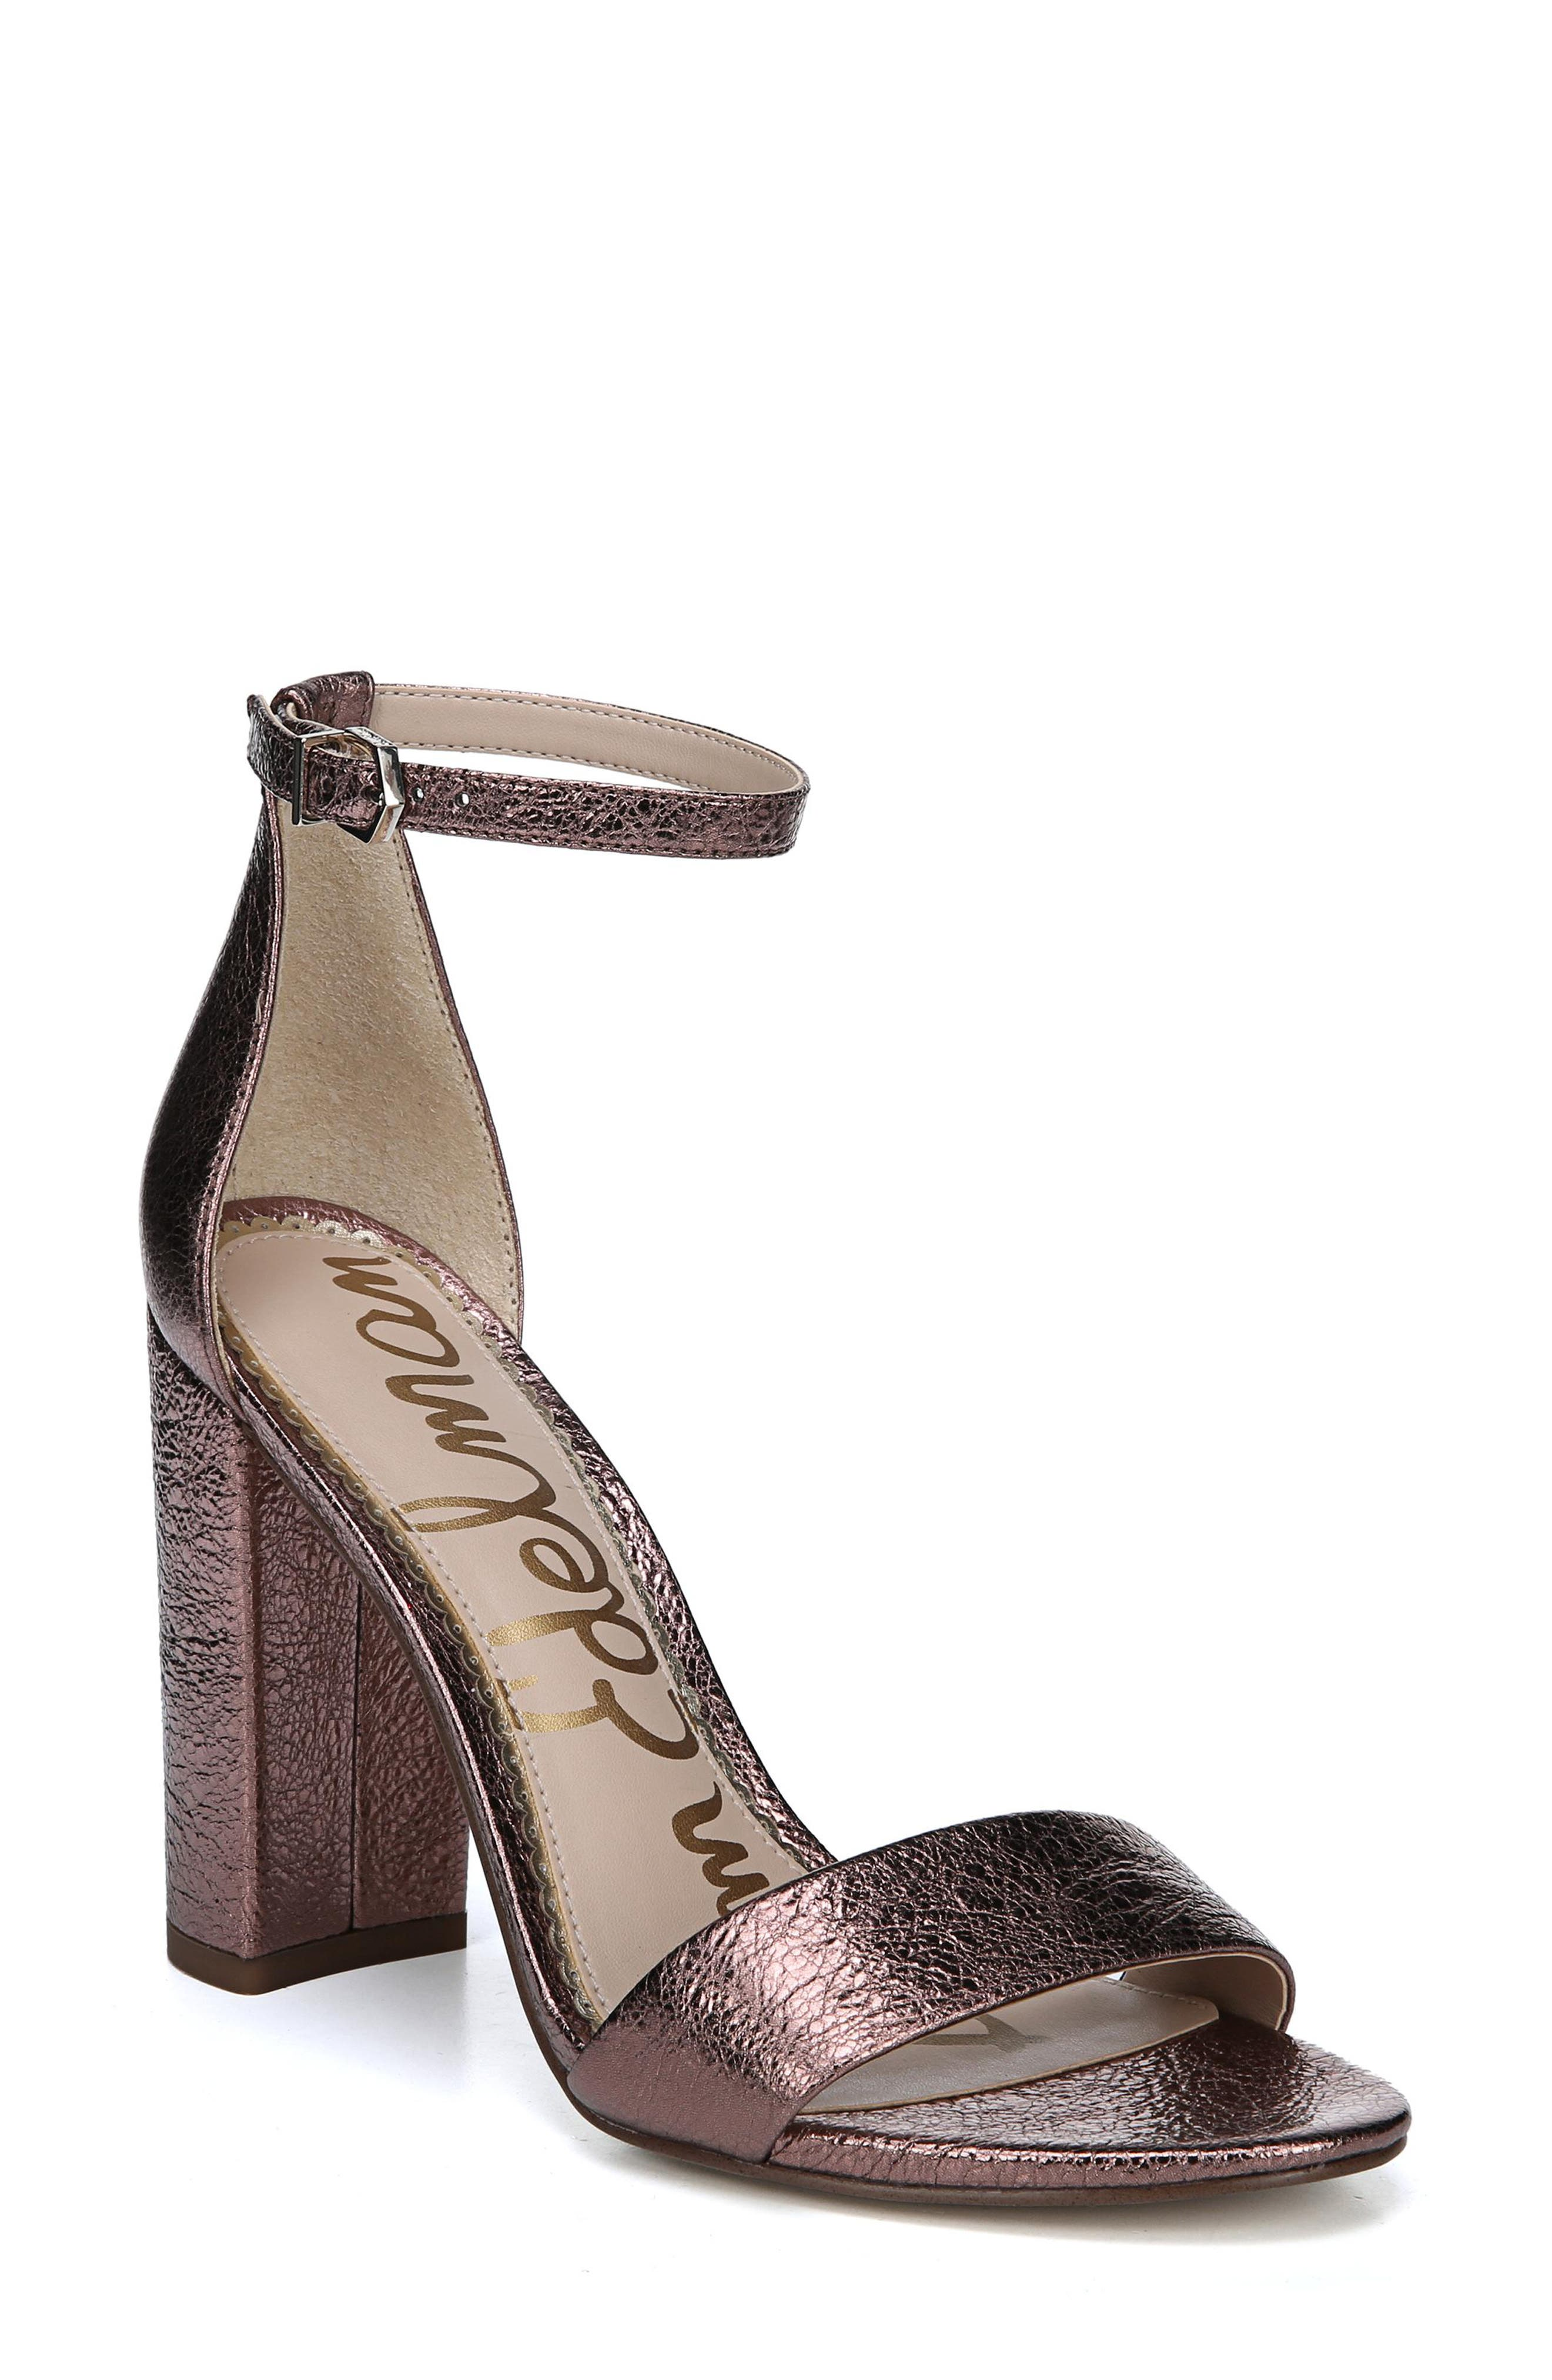 Yaro Ankle Strap Sandal,                             Main thumbnail 1, color,                             Cameo Pink Suede